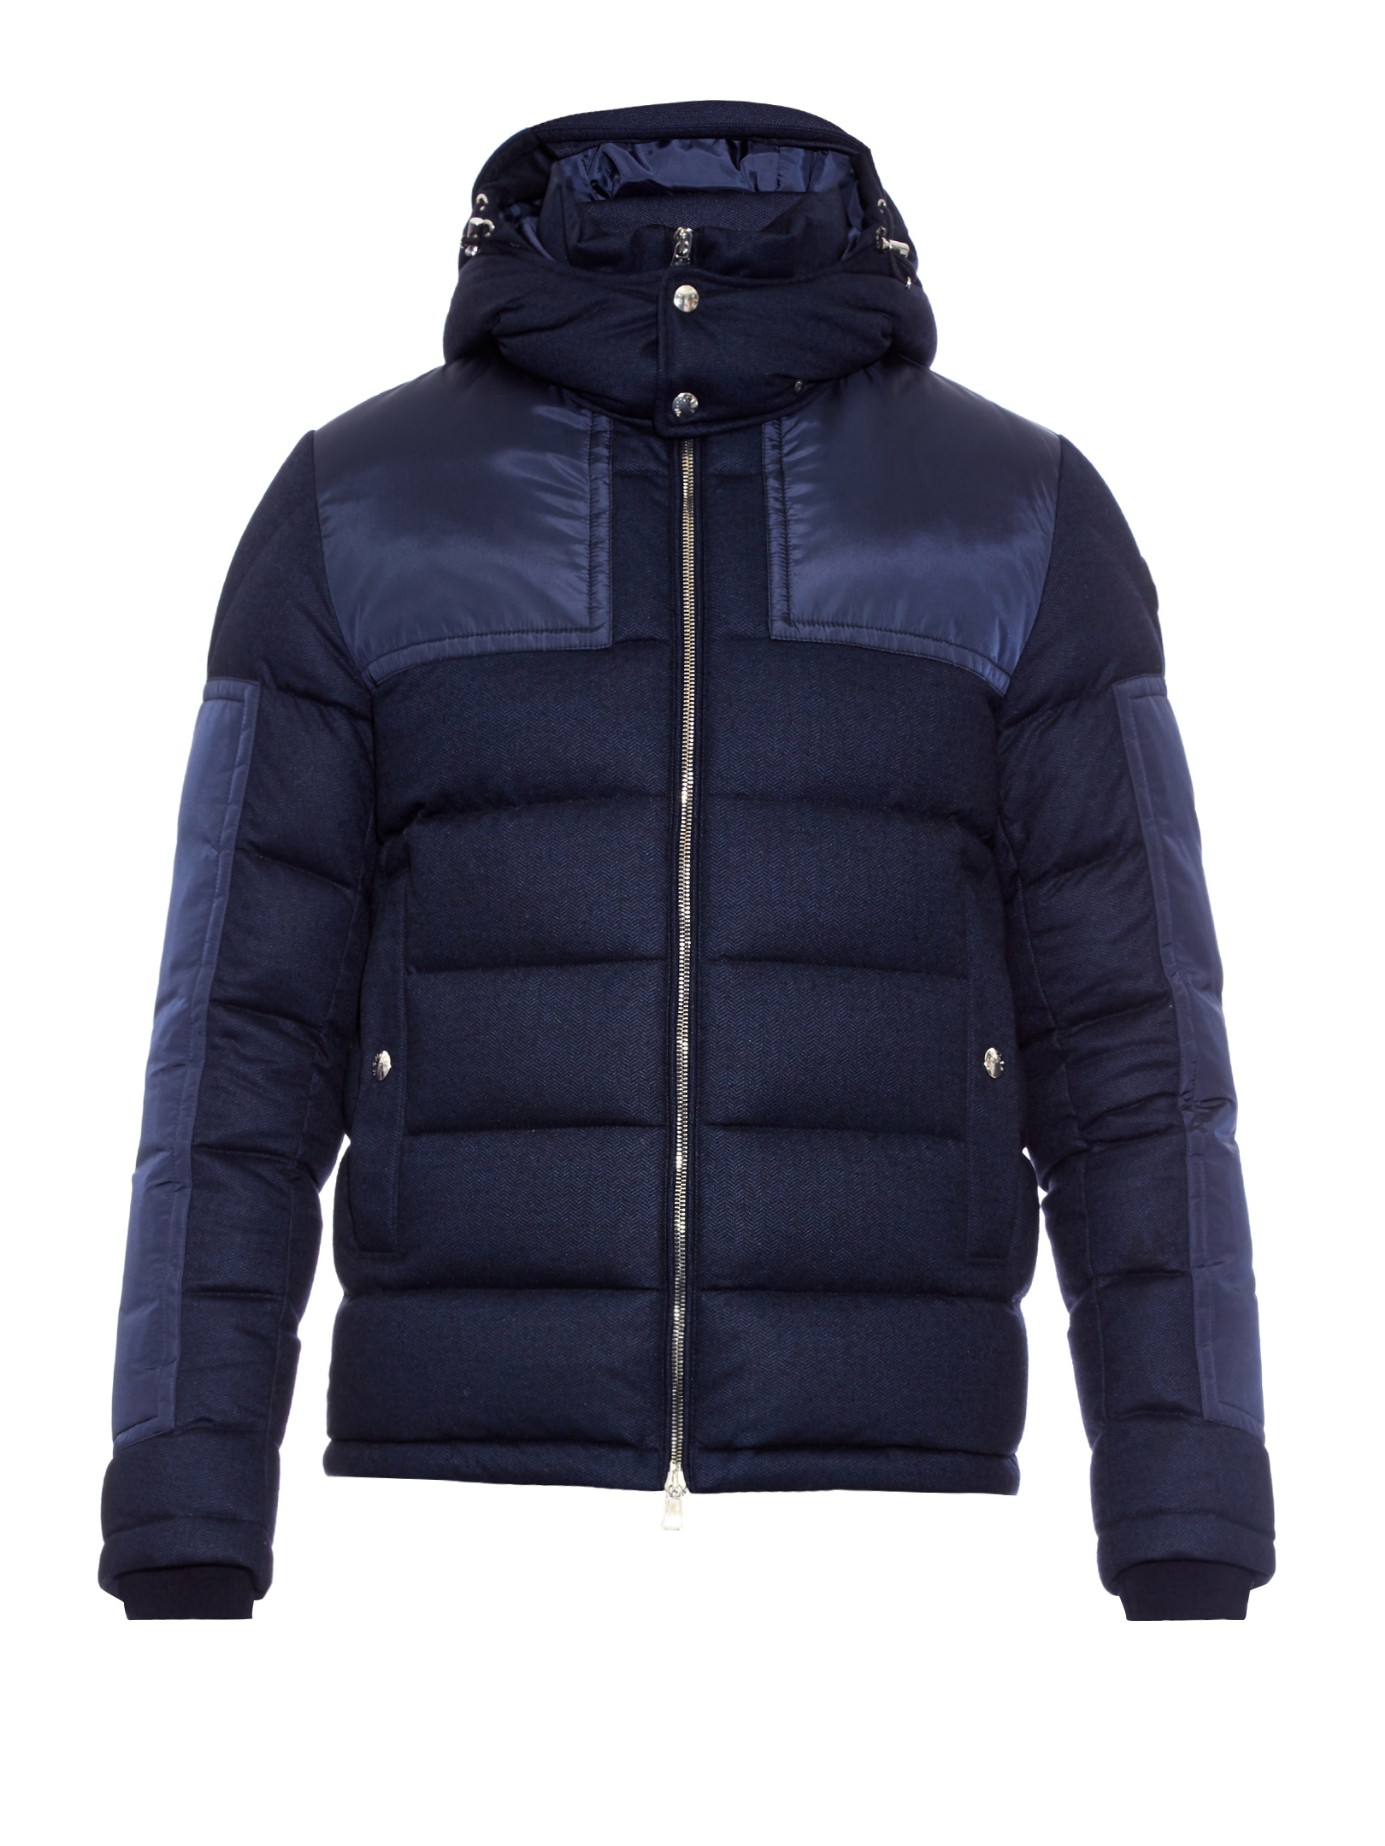 Moncler Severac Panelled Wool Flanel Coat In Blue For Men Lyst Navy Gallery